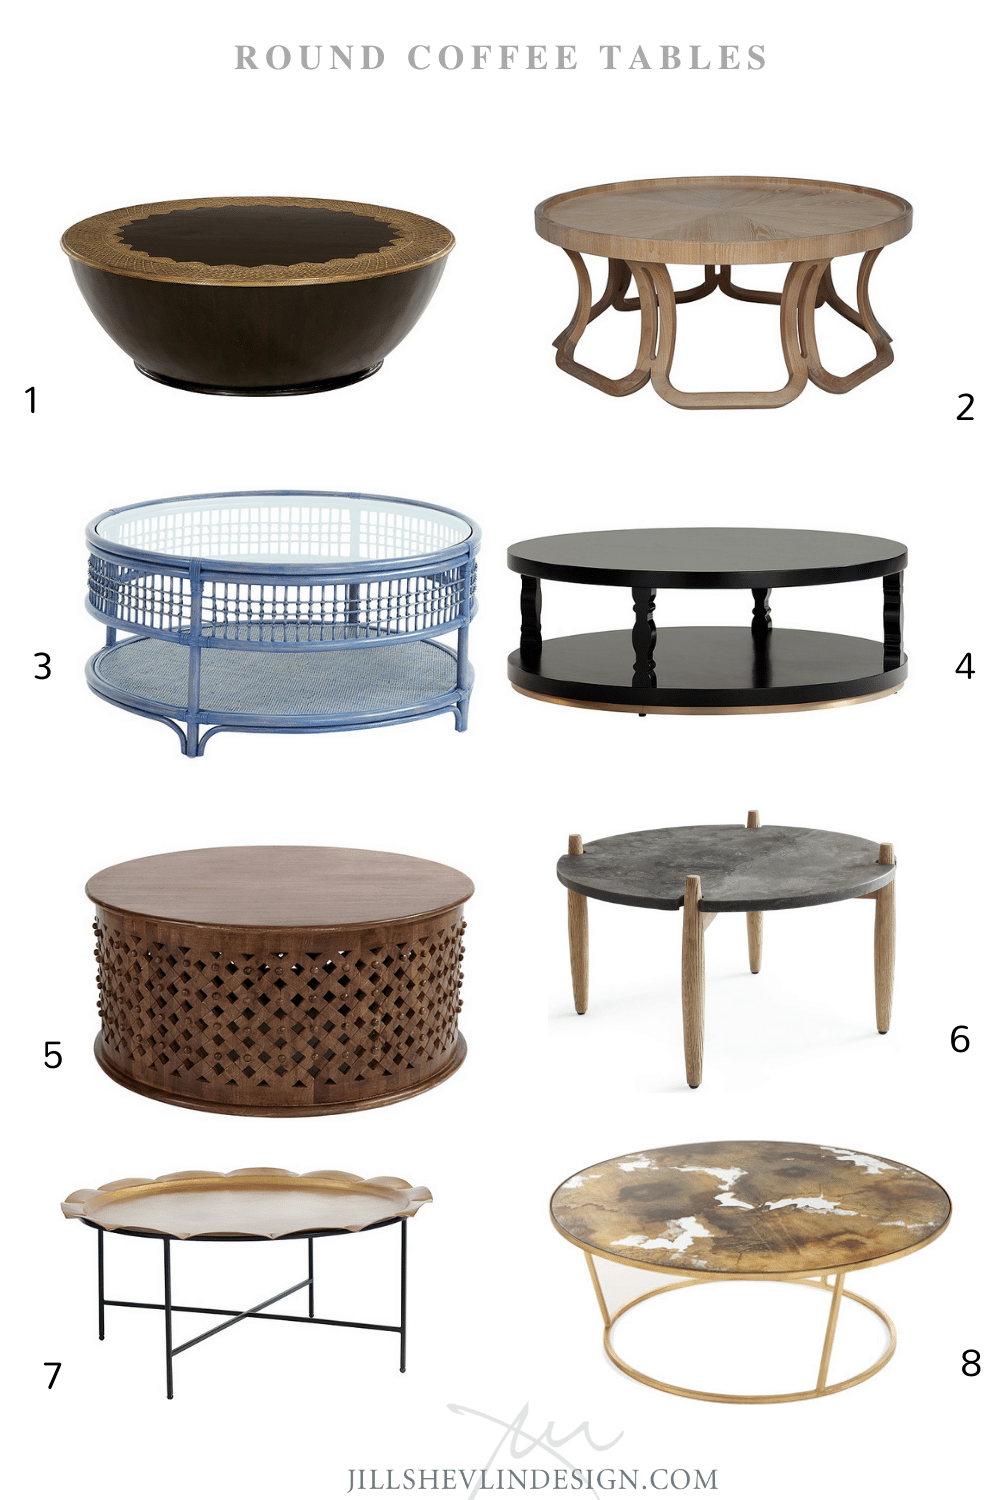 Shop Coffee Cocktail Tables Coffee Table Design Coffee Table Perfect Coffee Table [ 1500 x 1000 Pixel ]